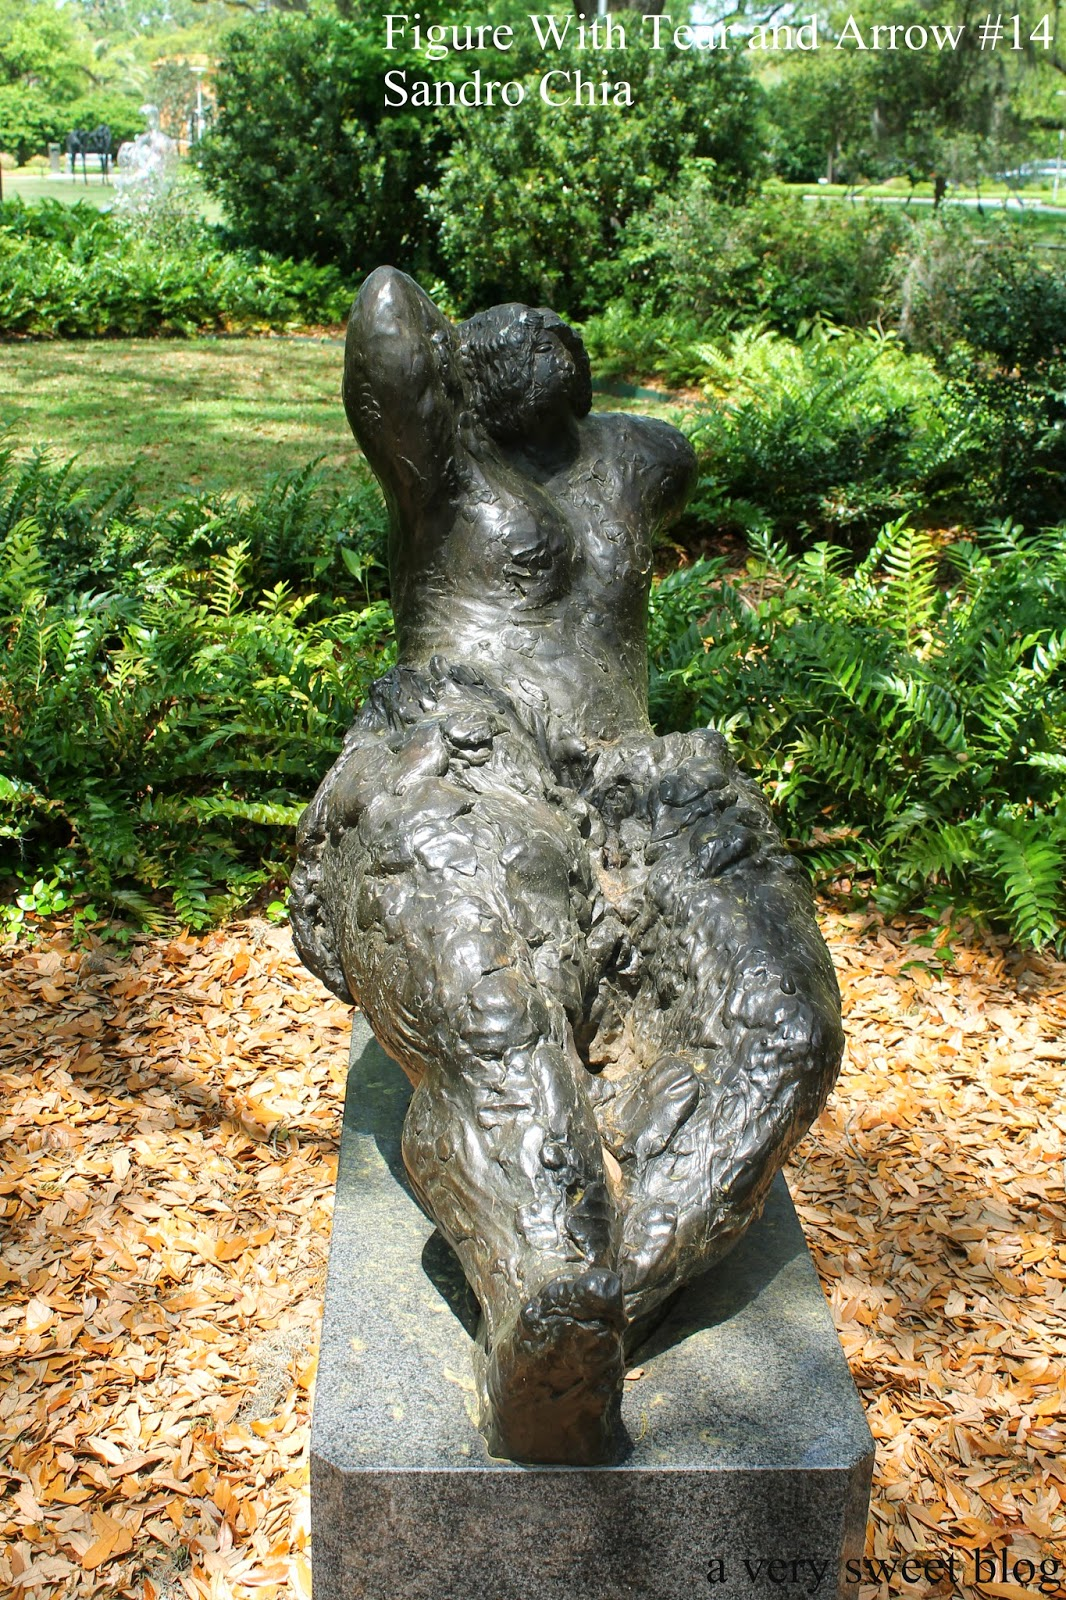 The Sydney And Walda Besthoff Sculpture Garden A Very Sweet Blog